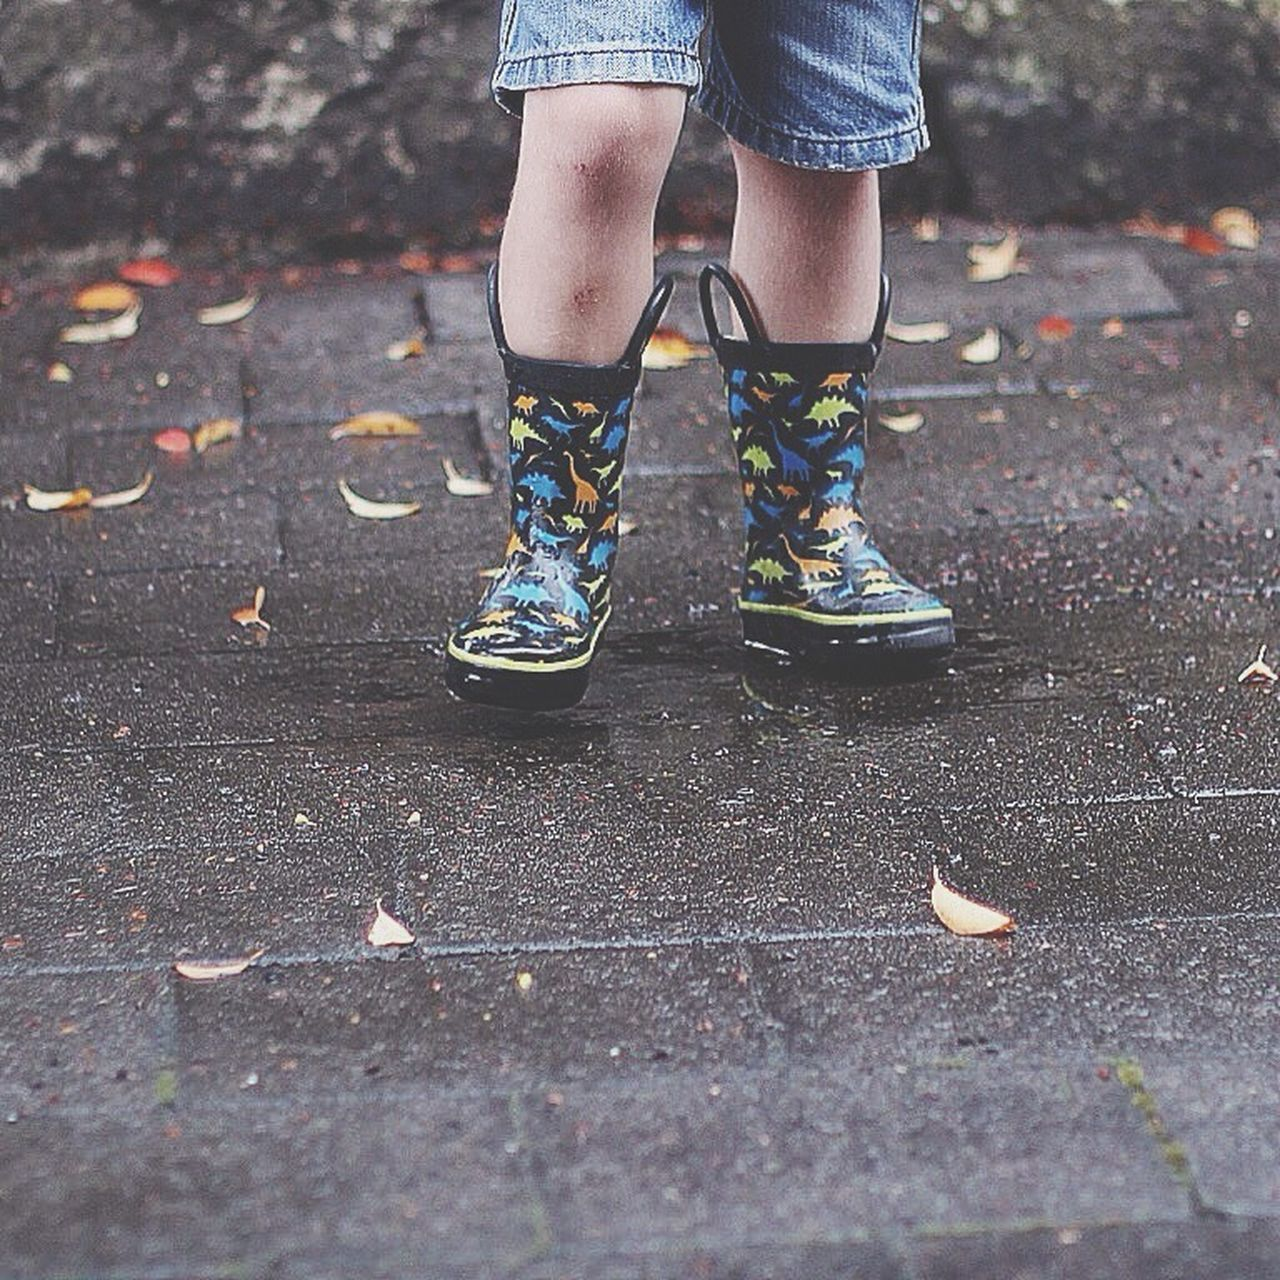 Rain and gumboots! 💦☔️ Gumboots Kinda Day Rain Weather Leaves